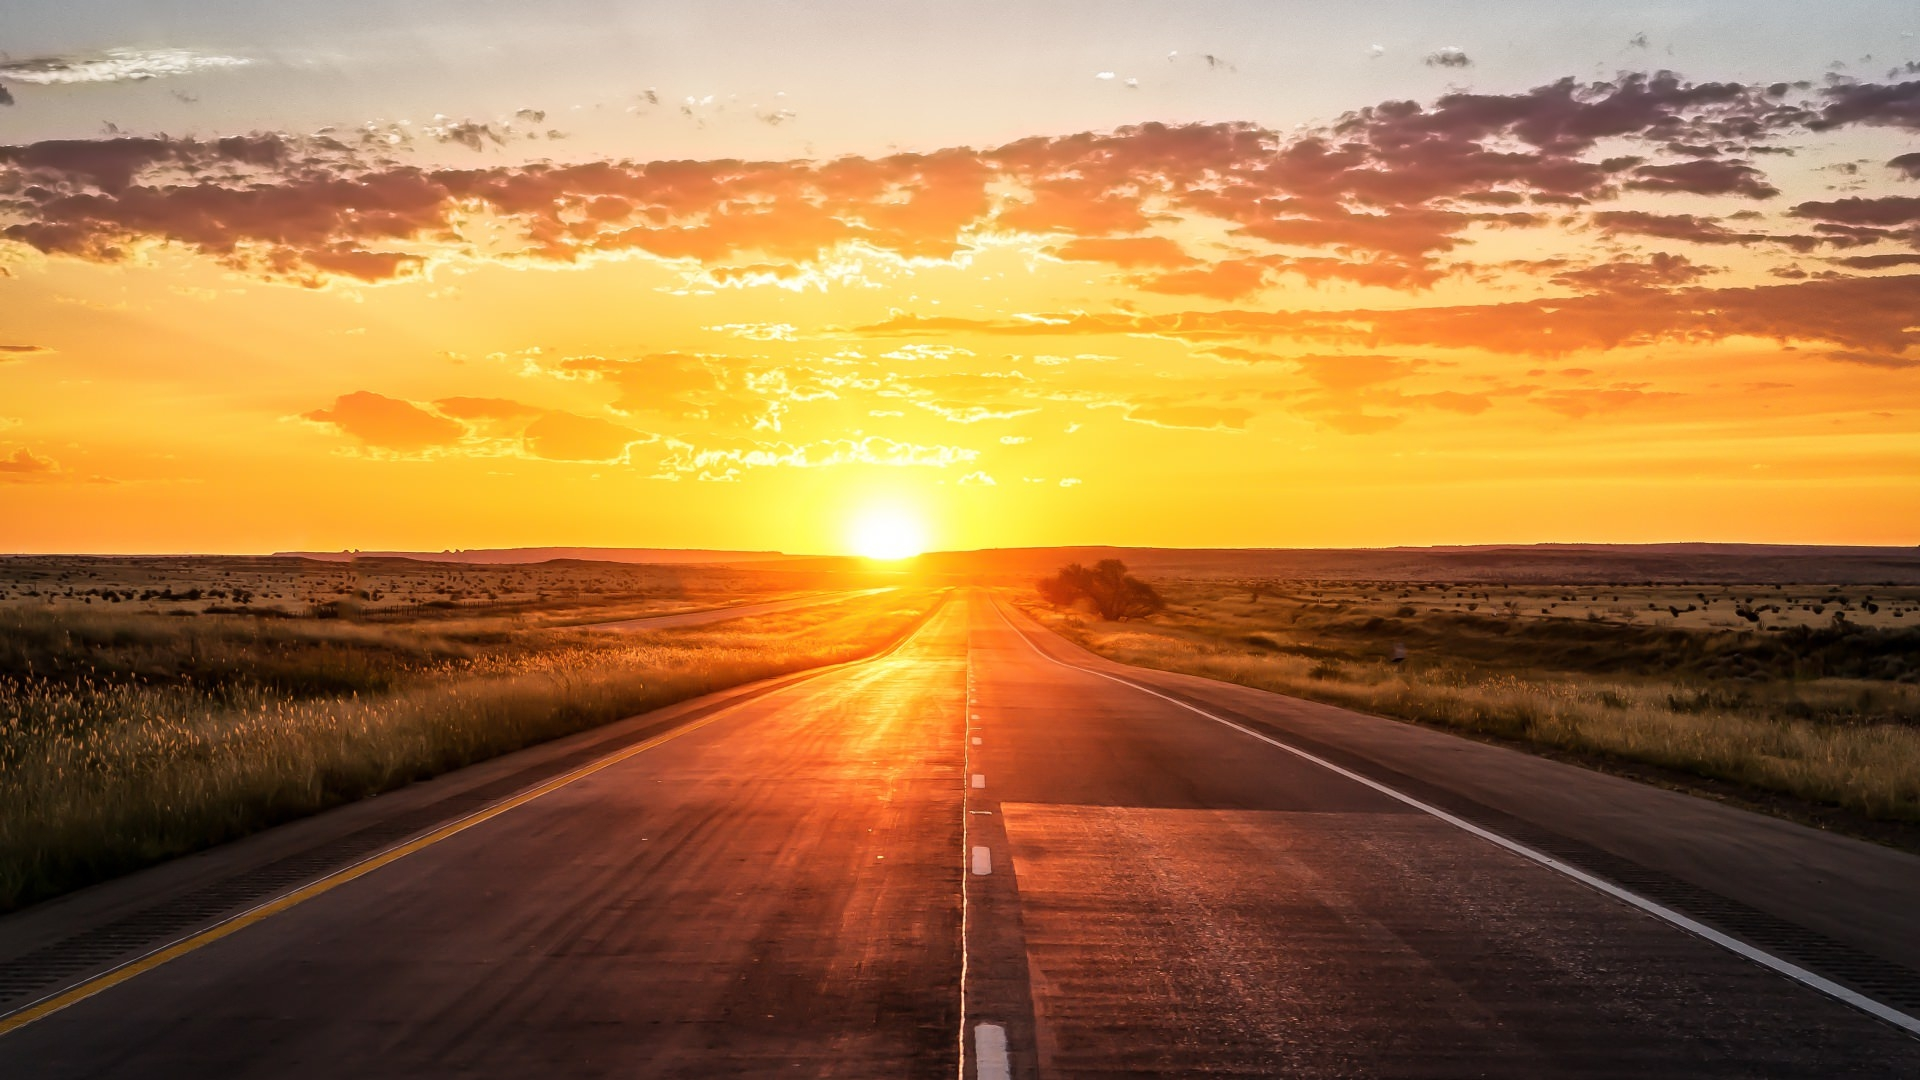 Sunset Road Background For Free